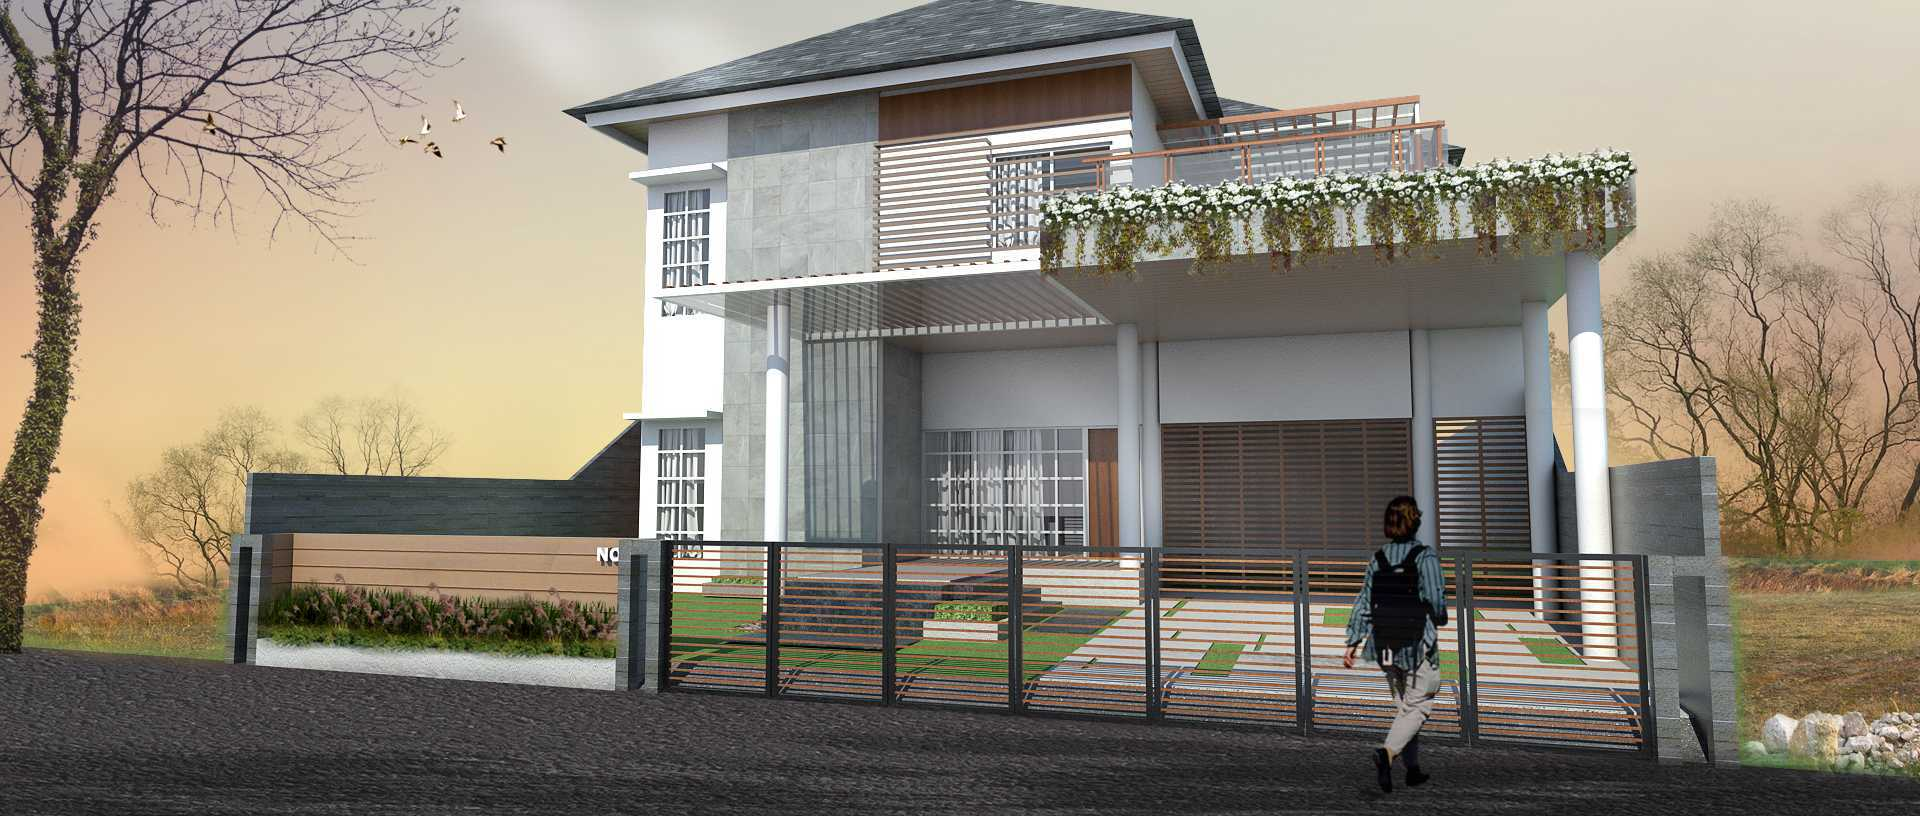 Future Architects Studio Mr. A House In Pontianak Pontianak, Indonesia Pontianak, Indonesia S2   29163